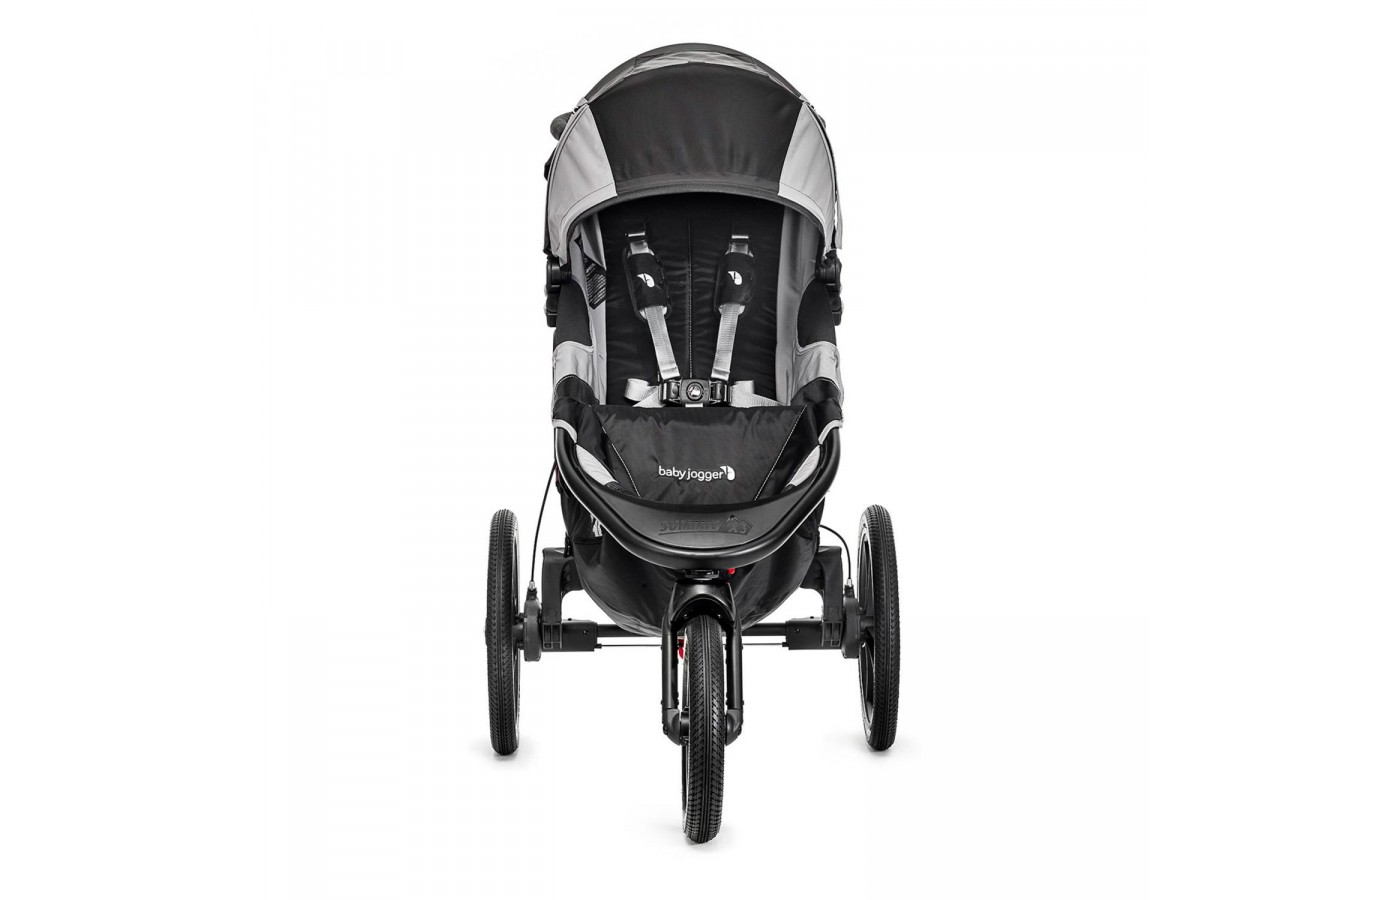 Baby Jogger Summit X3 front